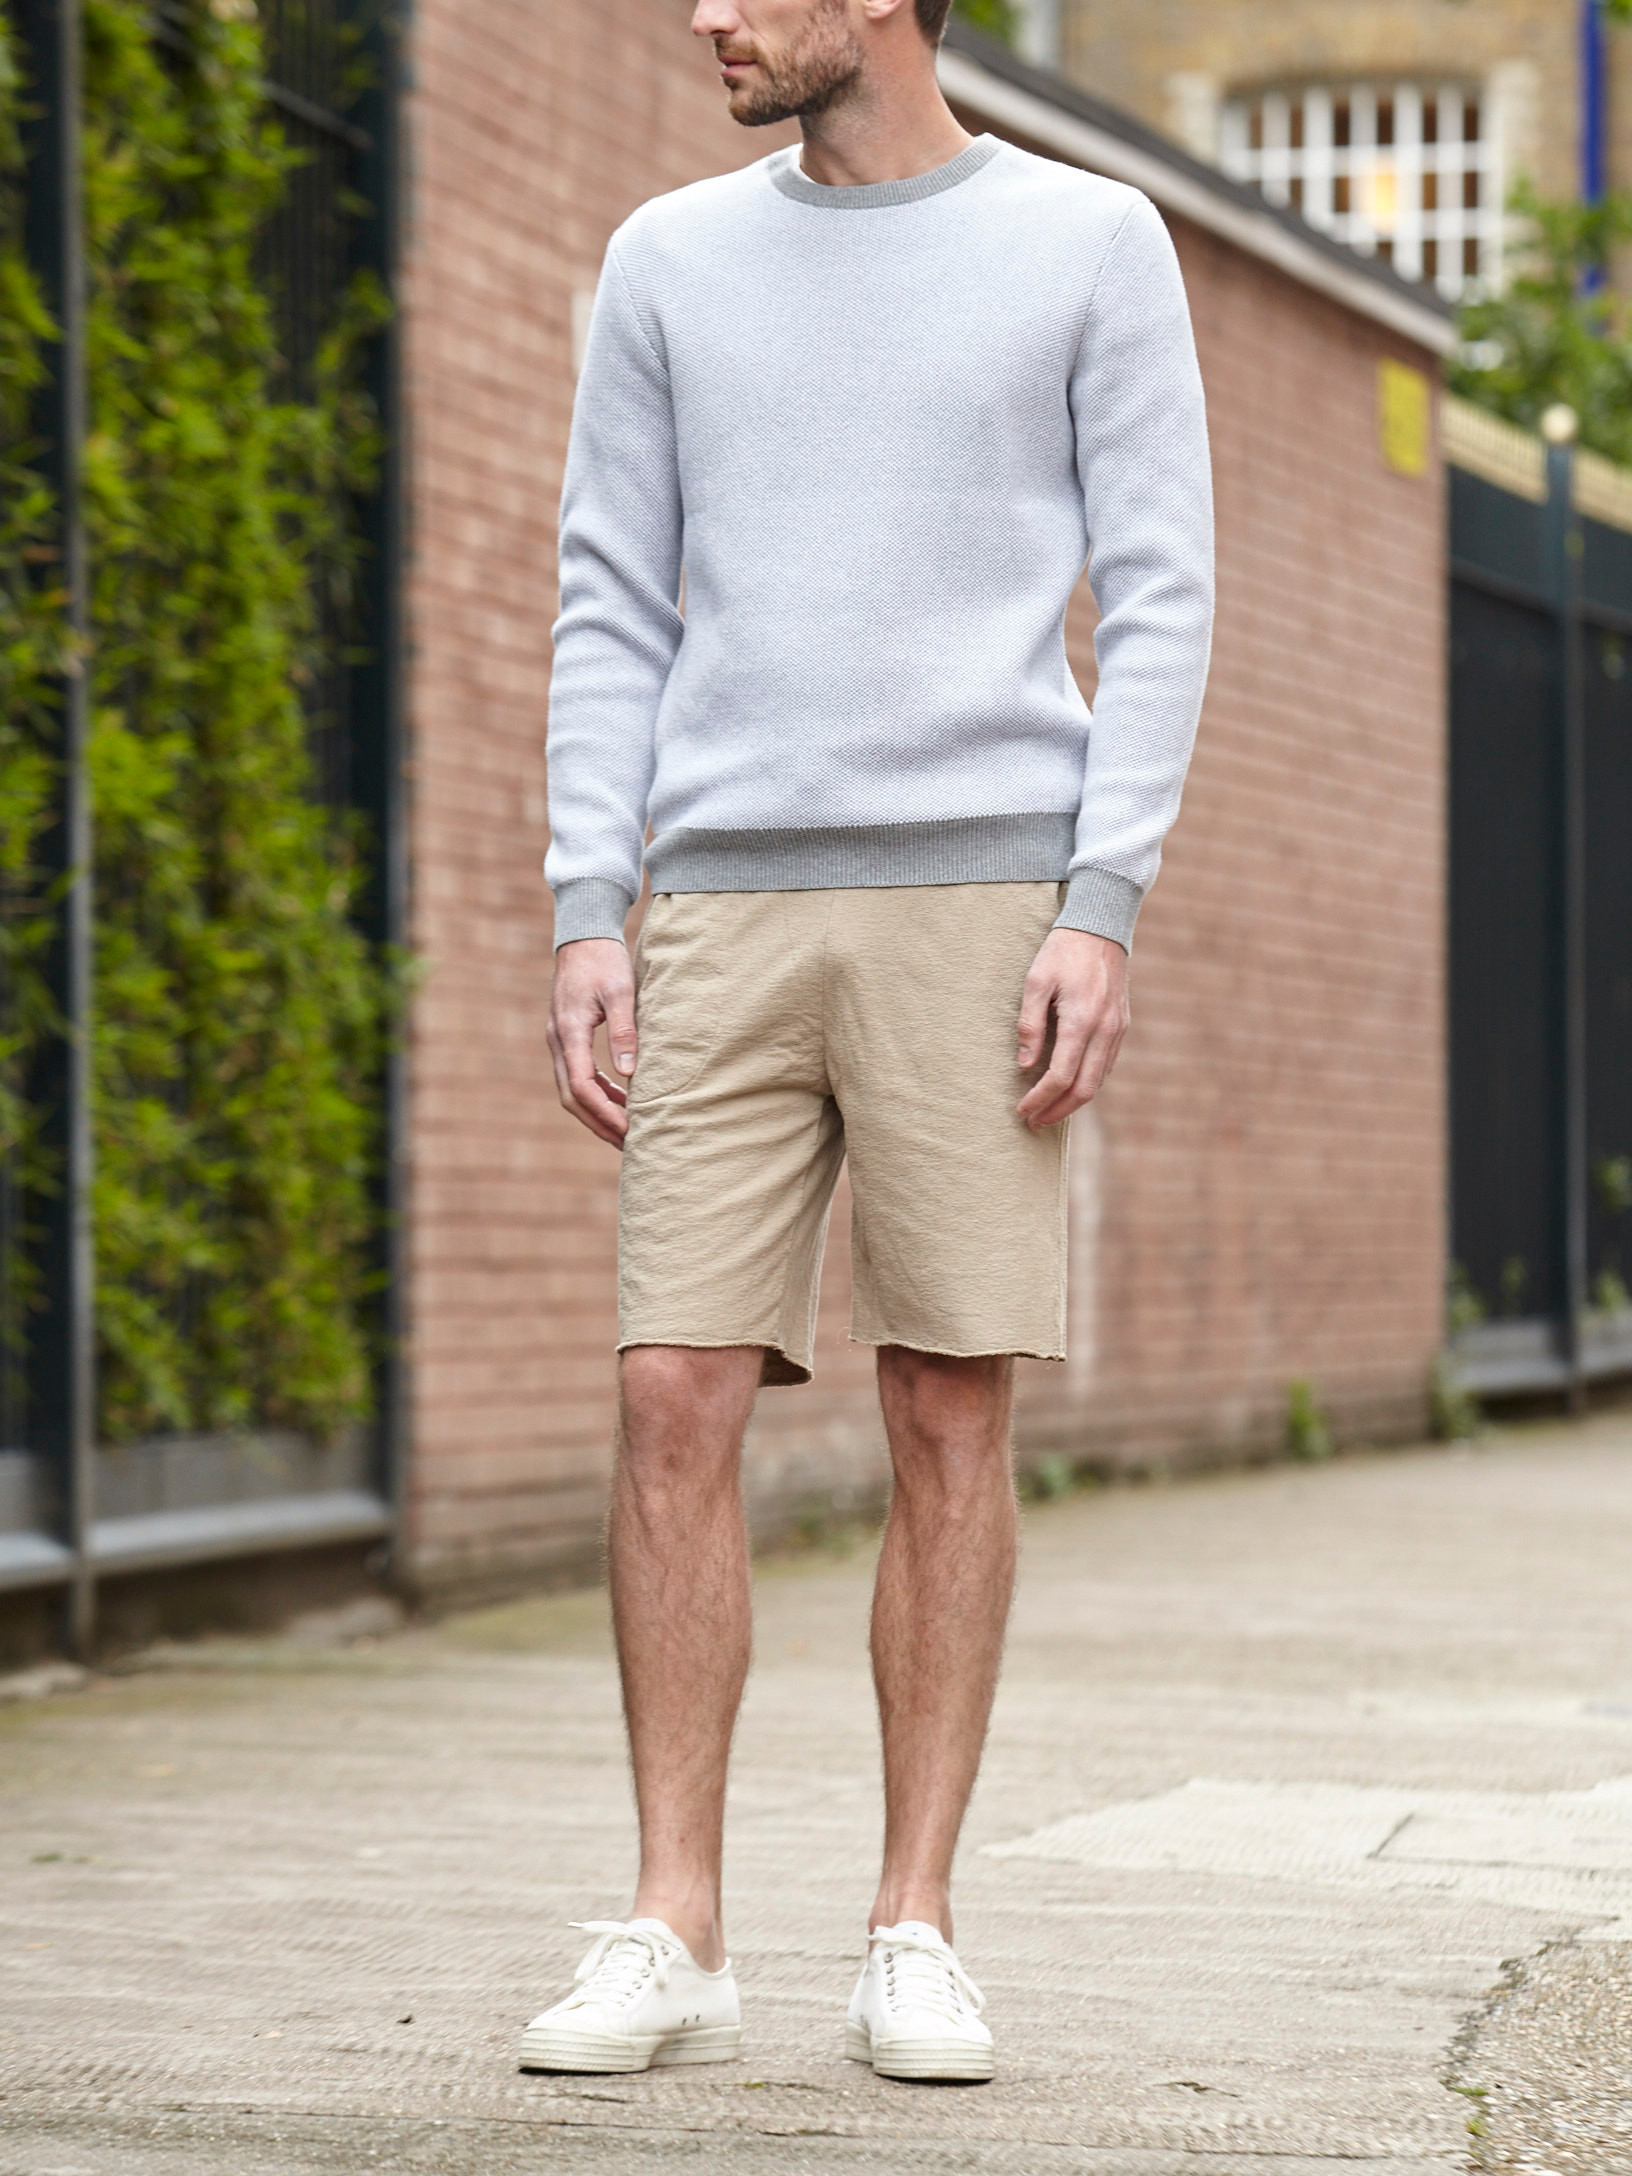 Men's outfit idea for 2021 with grey plain sweatshirt, sweat shorts, white trainers. Suitable for summer.